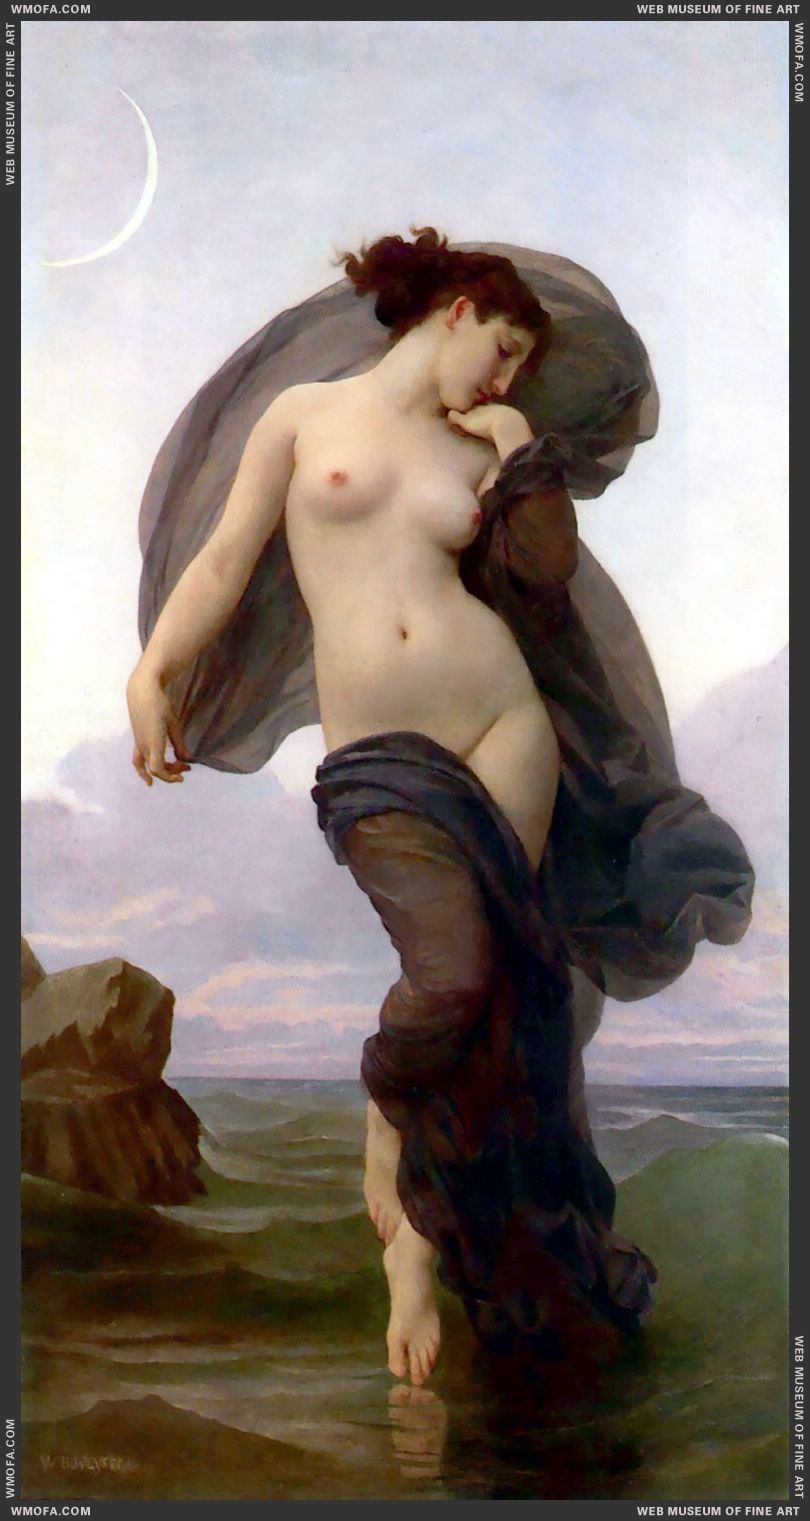 Le Crepuscule - Twilight 1882 by Bouguereau, William